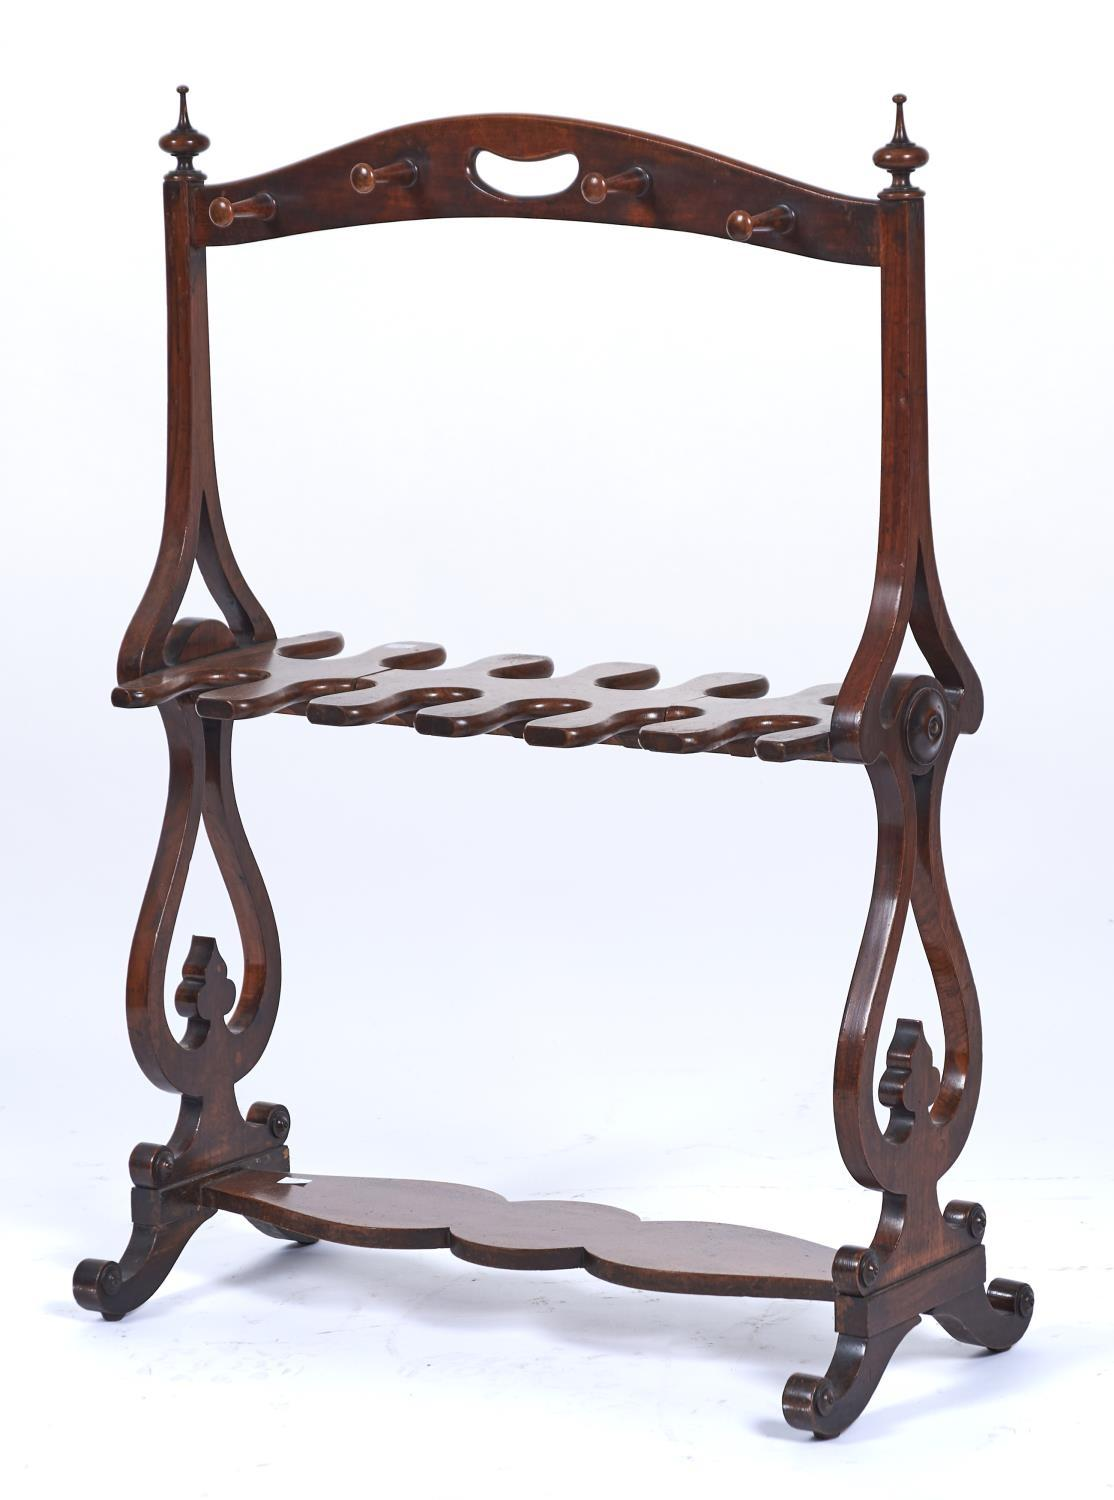 A VICTORIAN WALNUT WHIP AND BOOT RACK, C1840, THE ARCHED TOP RAIL WITH KIDNEY SHAPED CARRYING HANDLE